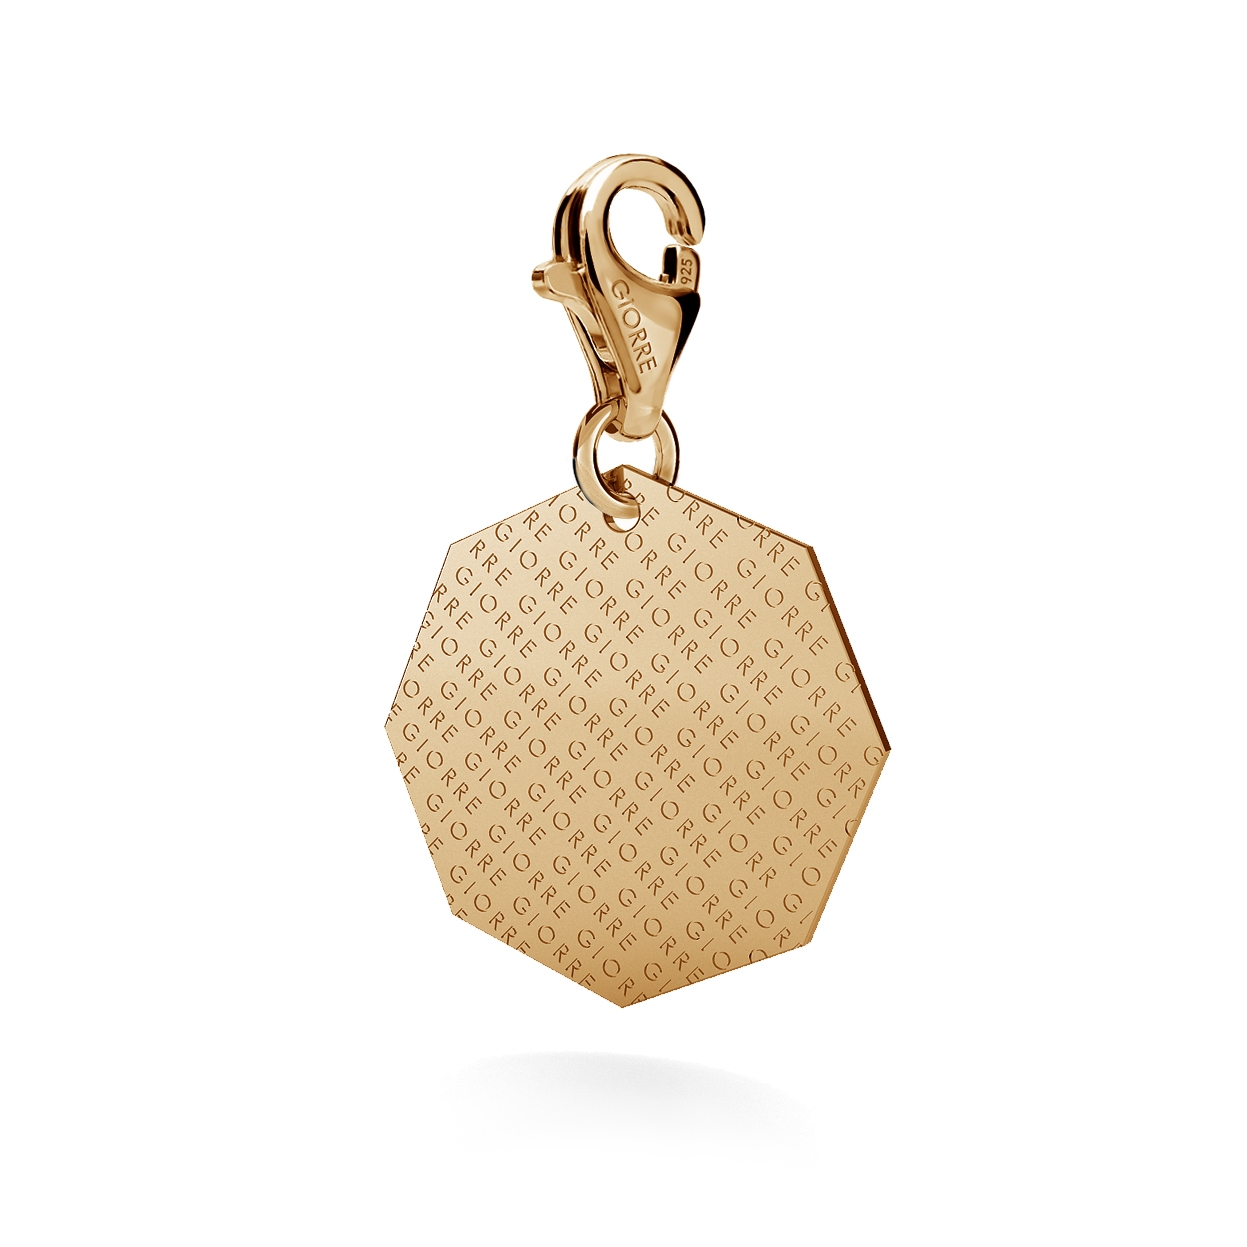 CHARM WITH ENGRAVE, OCTAGON, SILVER 925,  RHODIUM OR GOLD PLATED